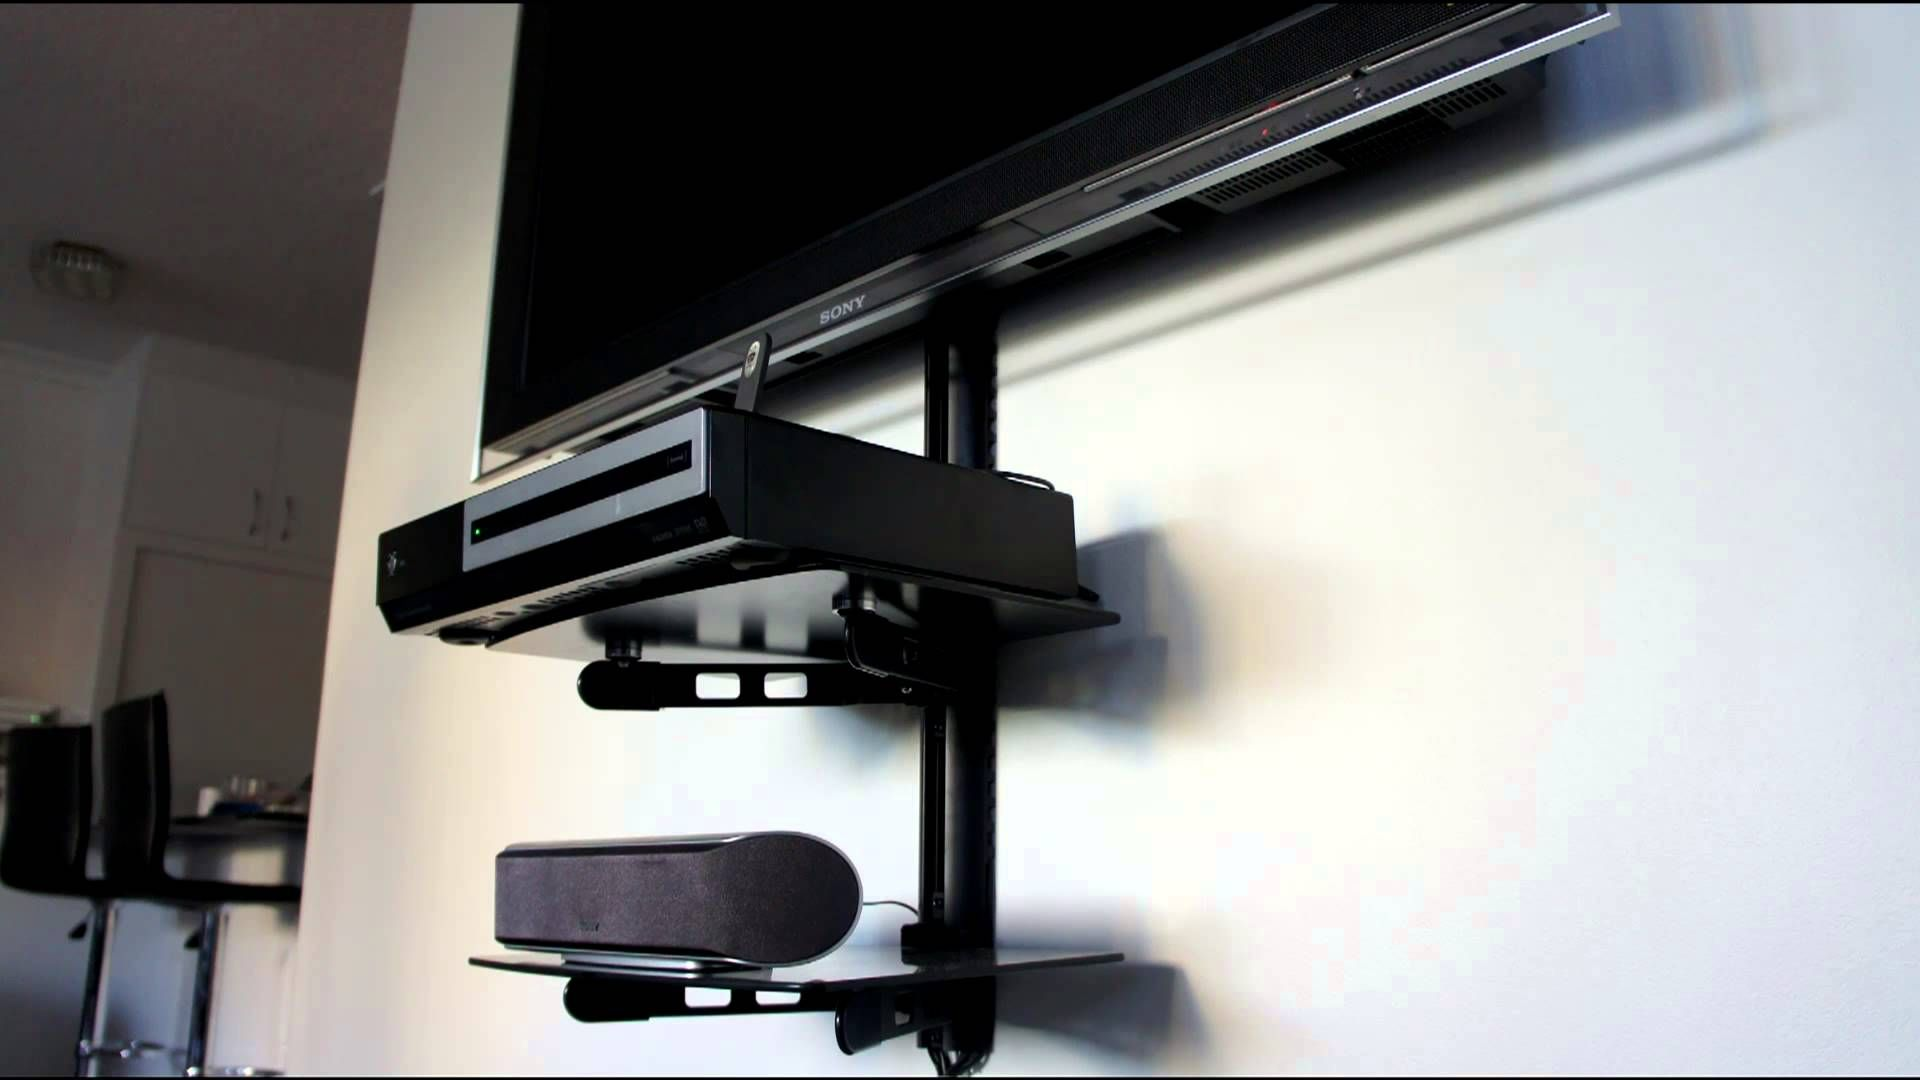 Shelves For Wall Mount Tv Google Search Wall Mounted Tv Lcd